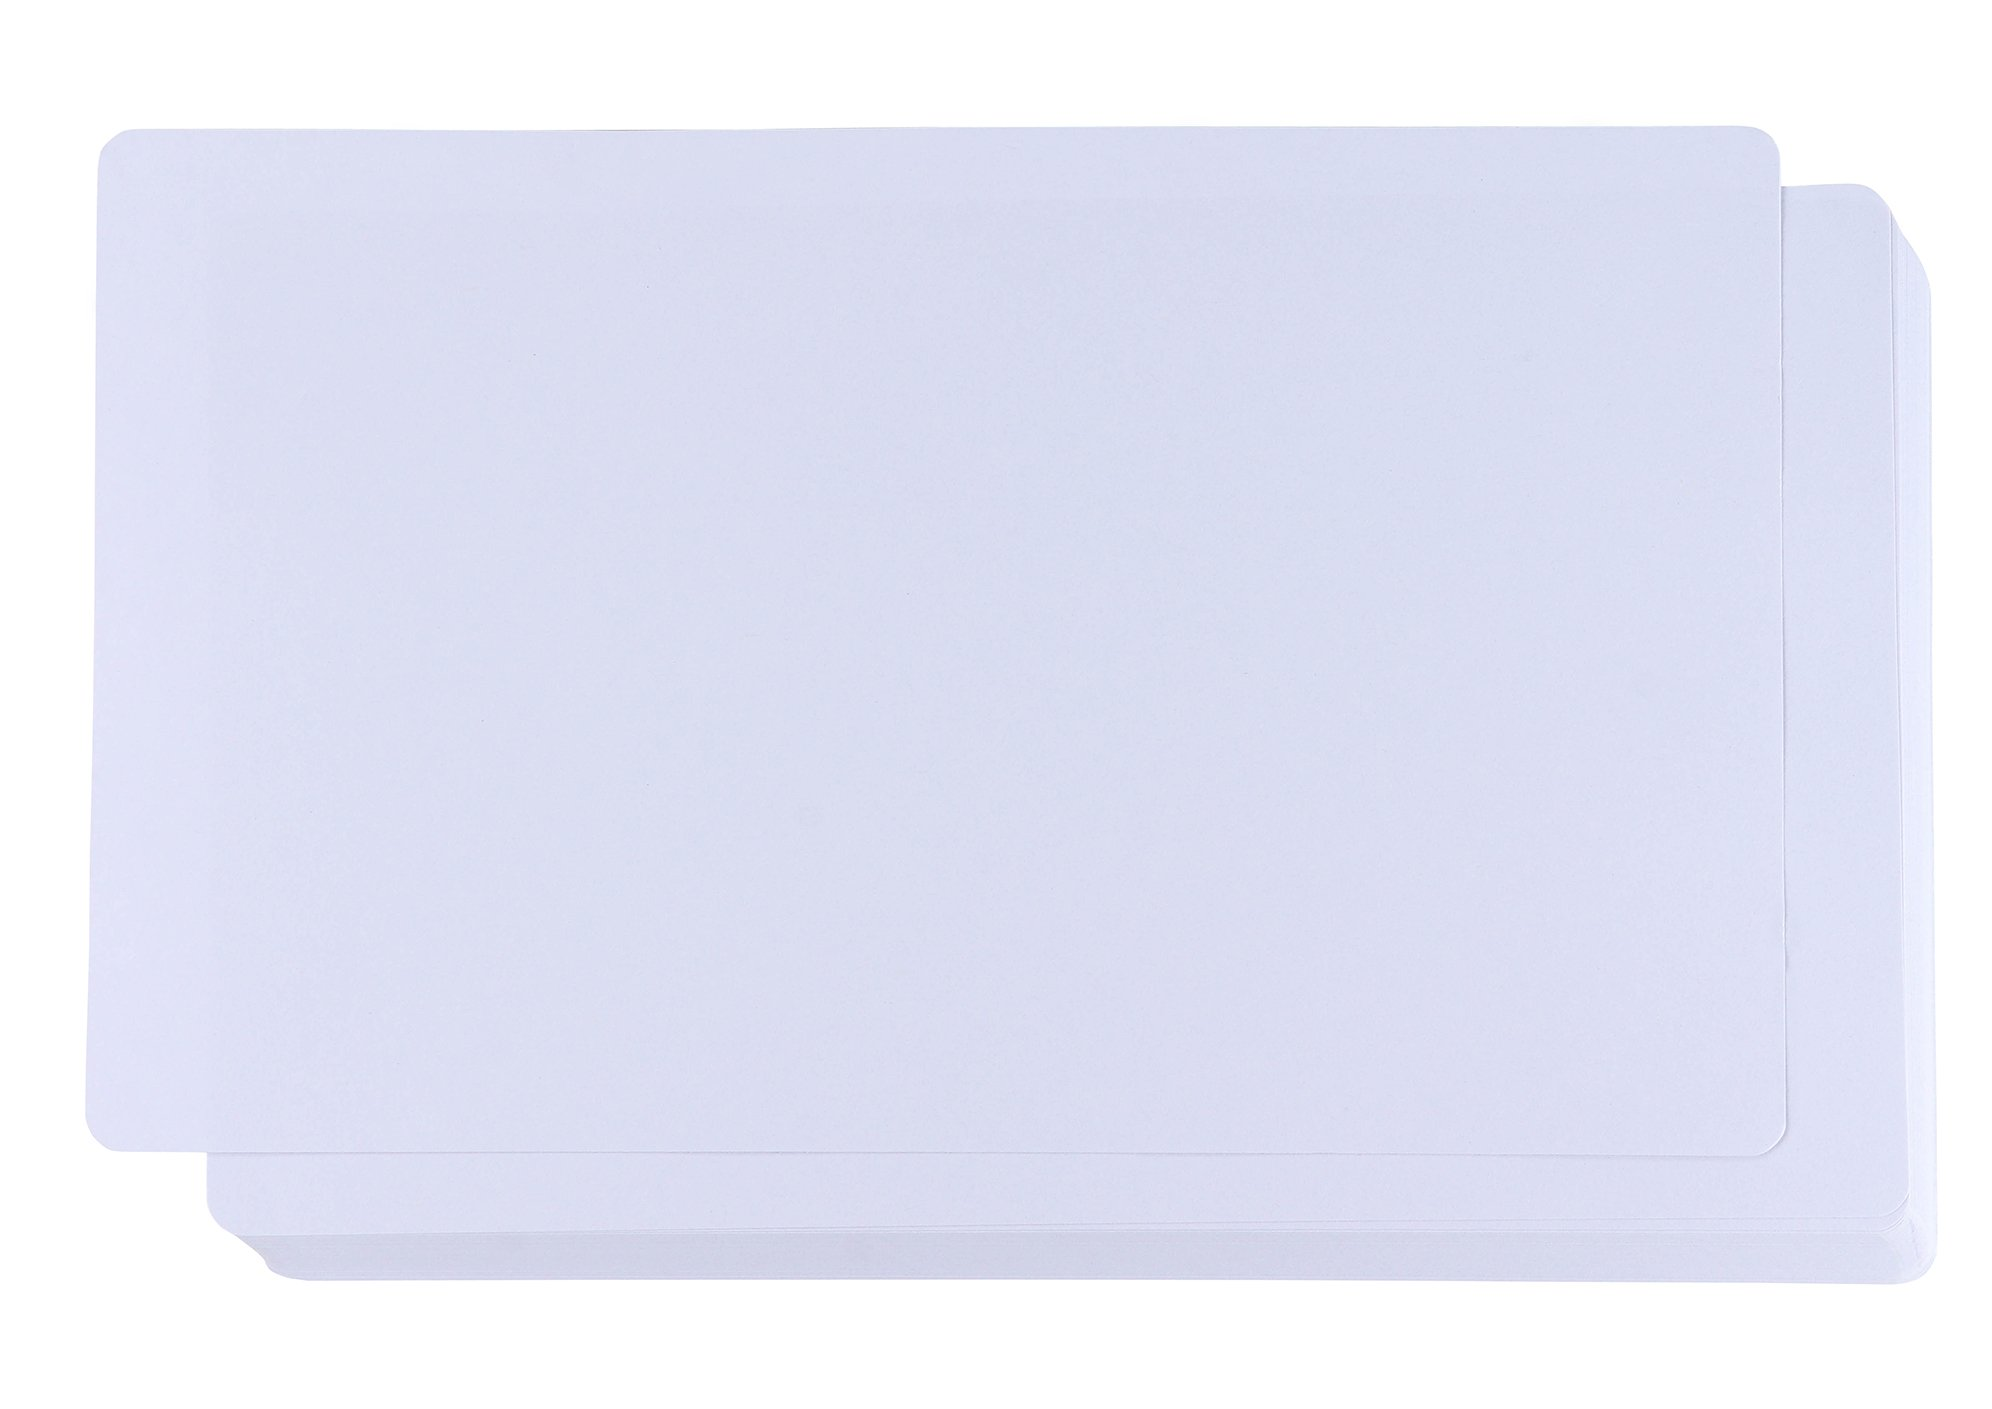 White Cardstock - 60-Pack 150GSM White Card Stock Paper with Rounded Corners, Blank Sheets for Award Certificates, Legal Sized, 8 x 14 inches